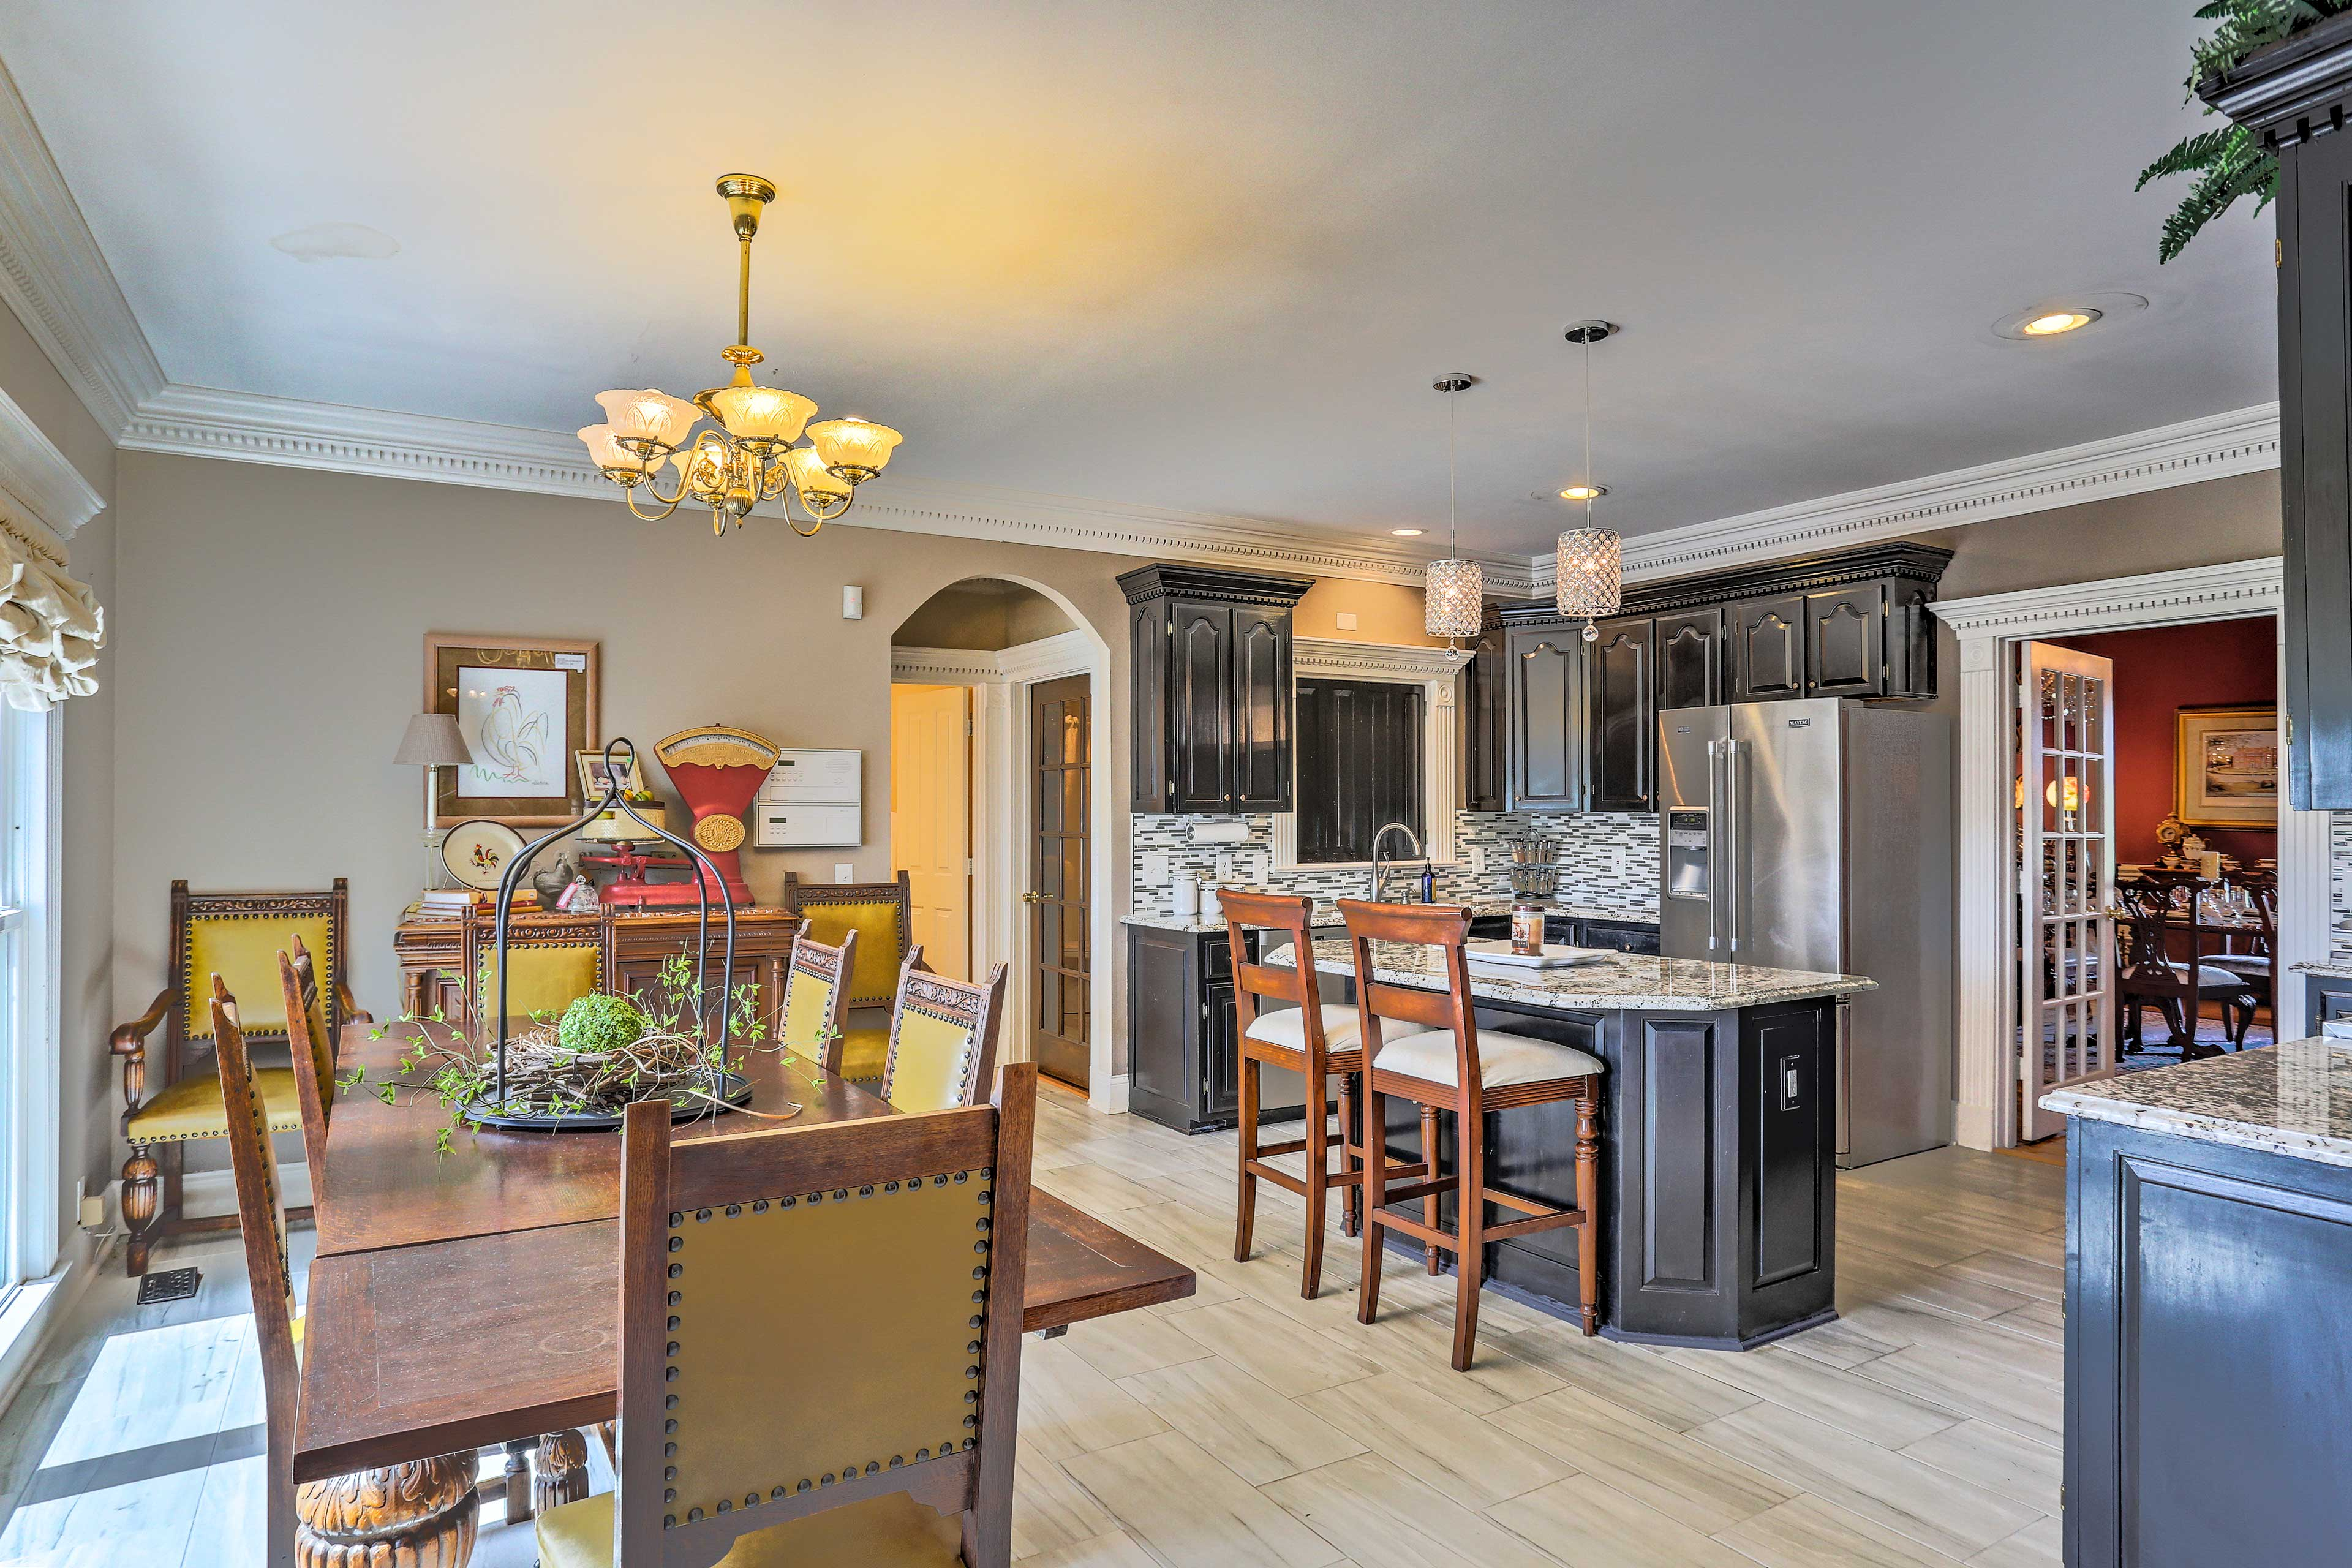 Head into the first fully equipped kitchen!